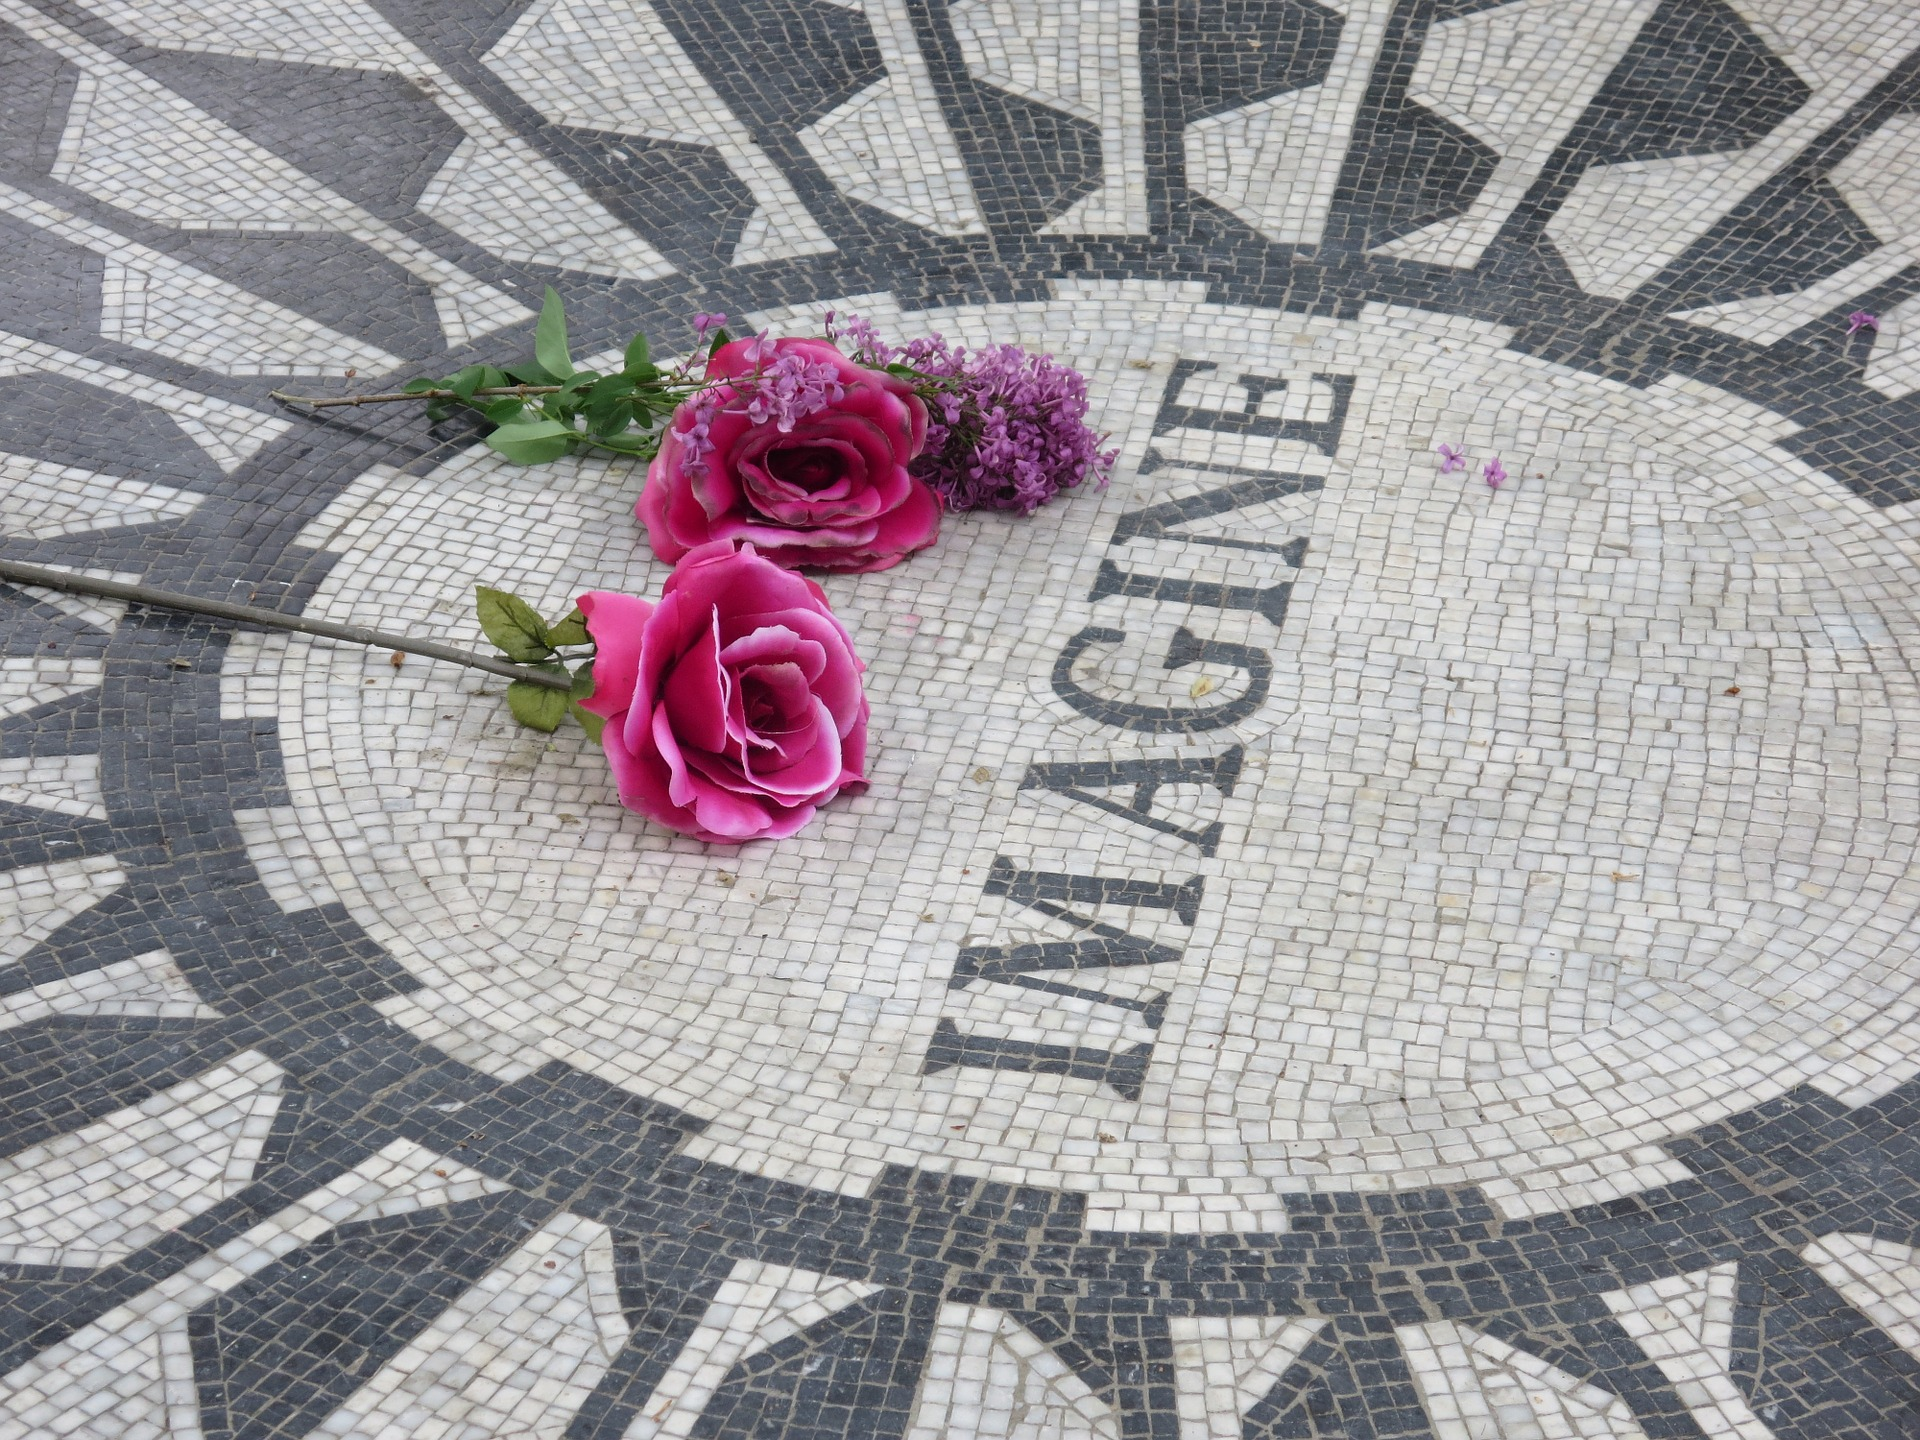 Imagine Mosaic, Strawberry Fields, Central Park, NYC